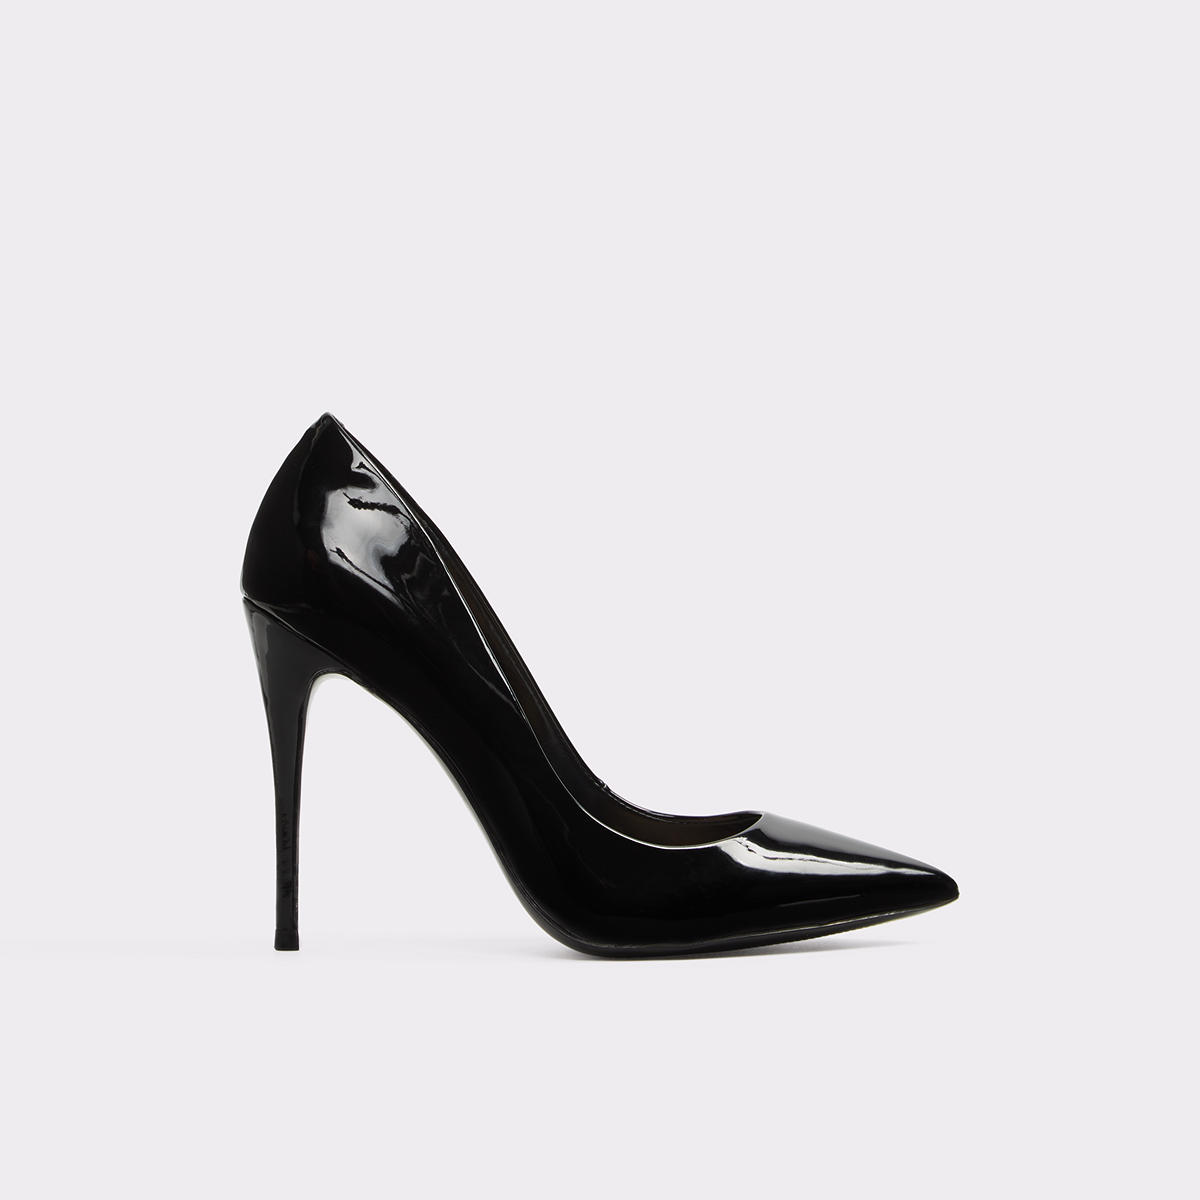 Stessy Black Patent Women's Online exclusives | ALDO US at Aldo Shoes in Victor, NY | Tuggl